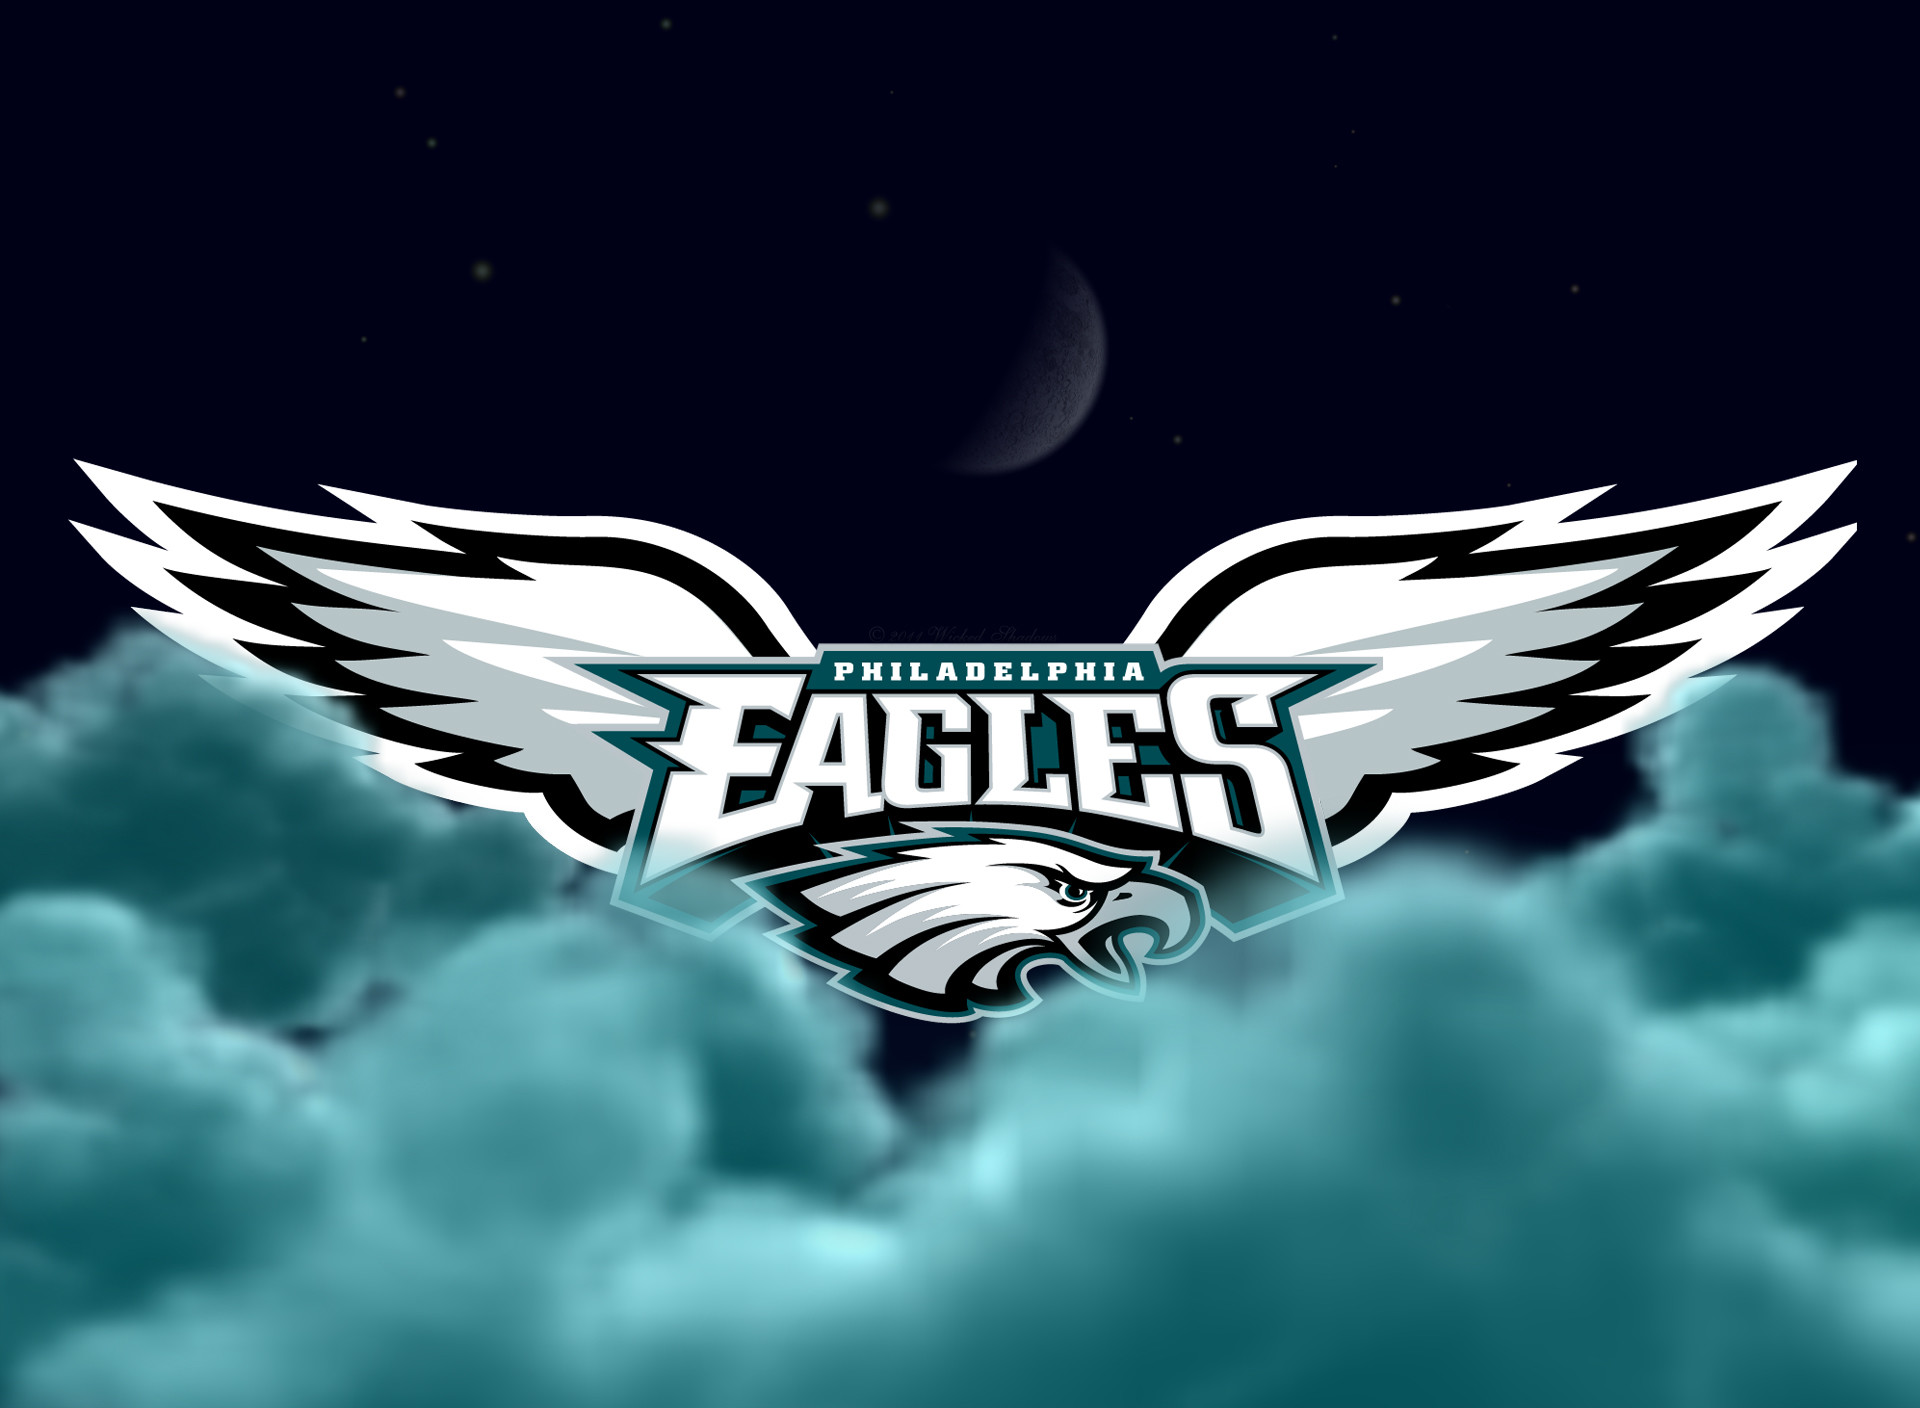 1920x1408 Philadelphia eagles wallpaper HD 1920×1200 Free Philadelphia Eagles Wallpapers | Adorable Wallpapers |